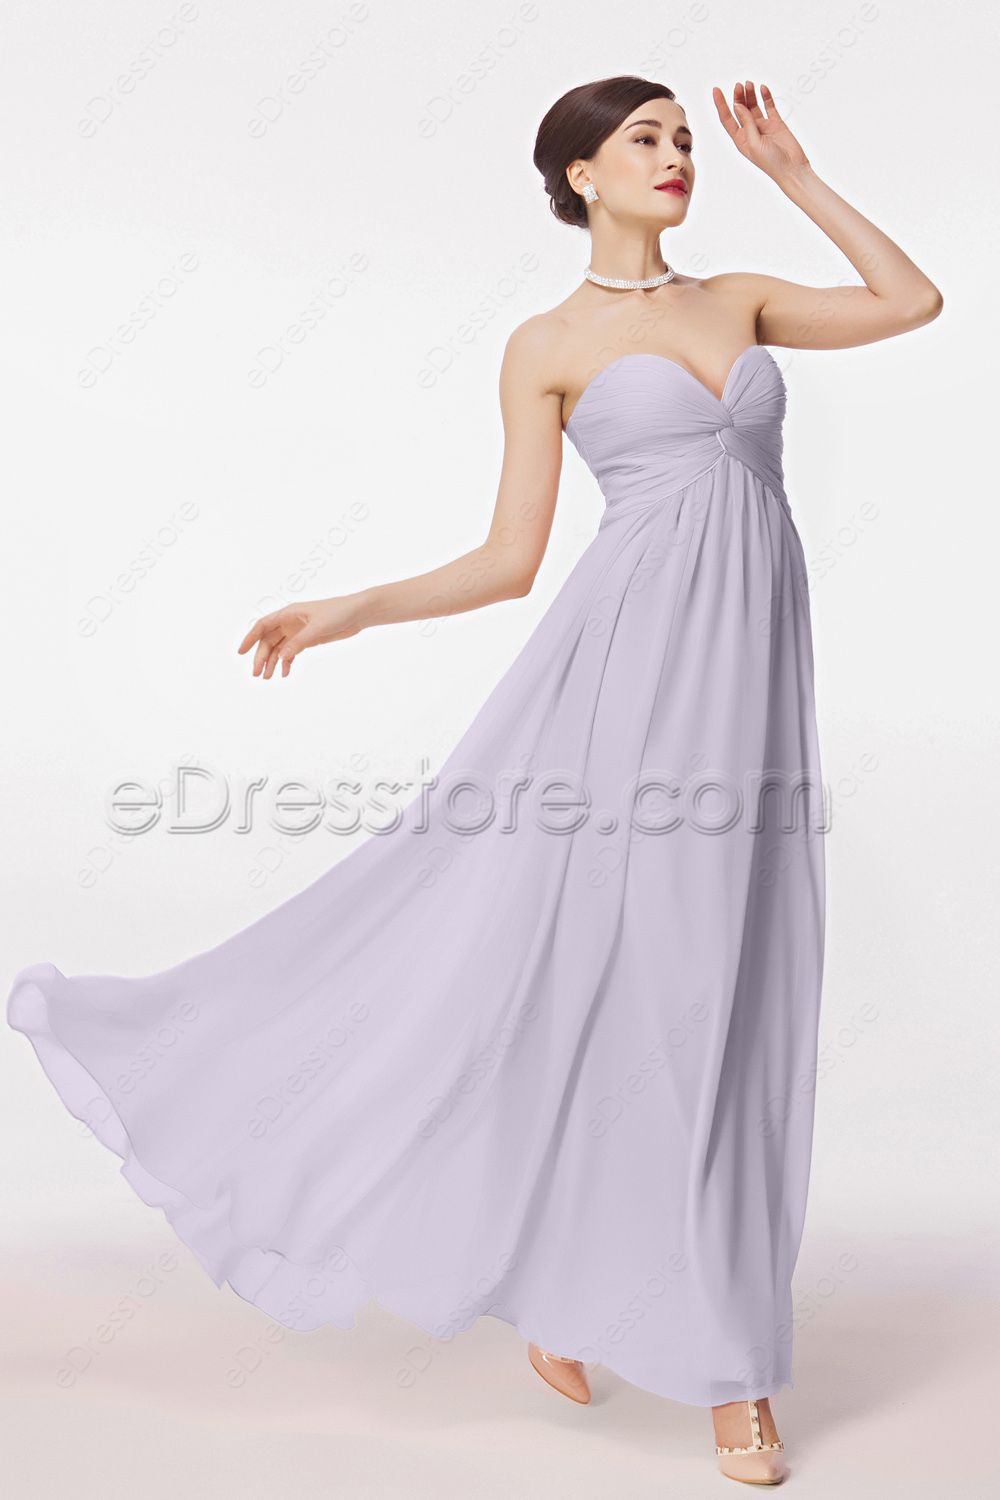 Soft lavender maternity bridesmaid dresses maternity bridesmaid lavender bridesmaid dresses maternity bridesmaid dresses pregnant bridesmaid dresses bridesmaid dresses with empire ombrellifo Gallery